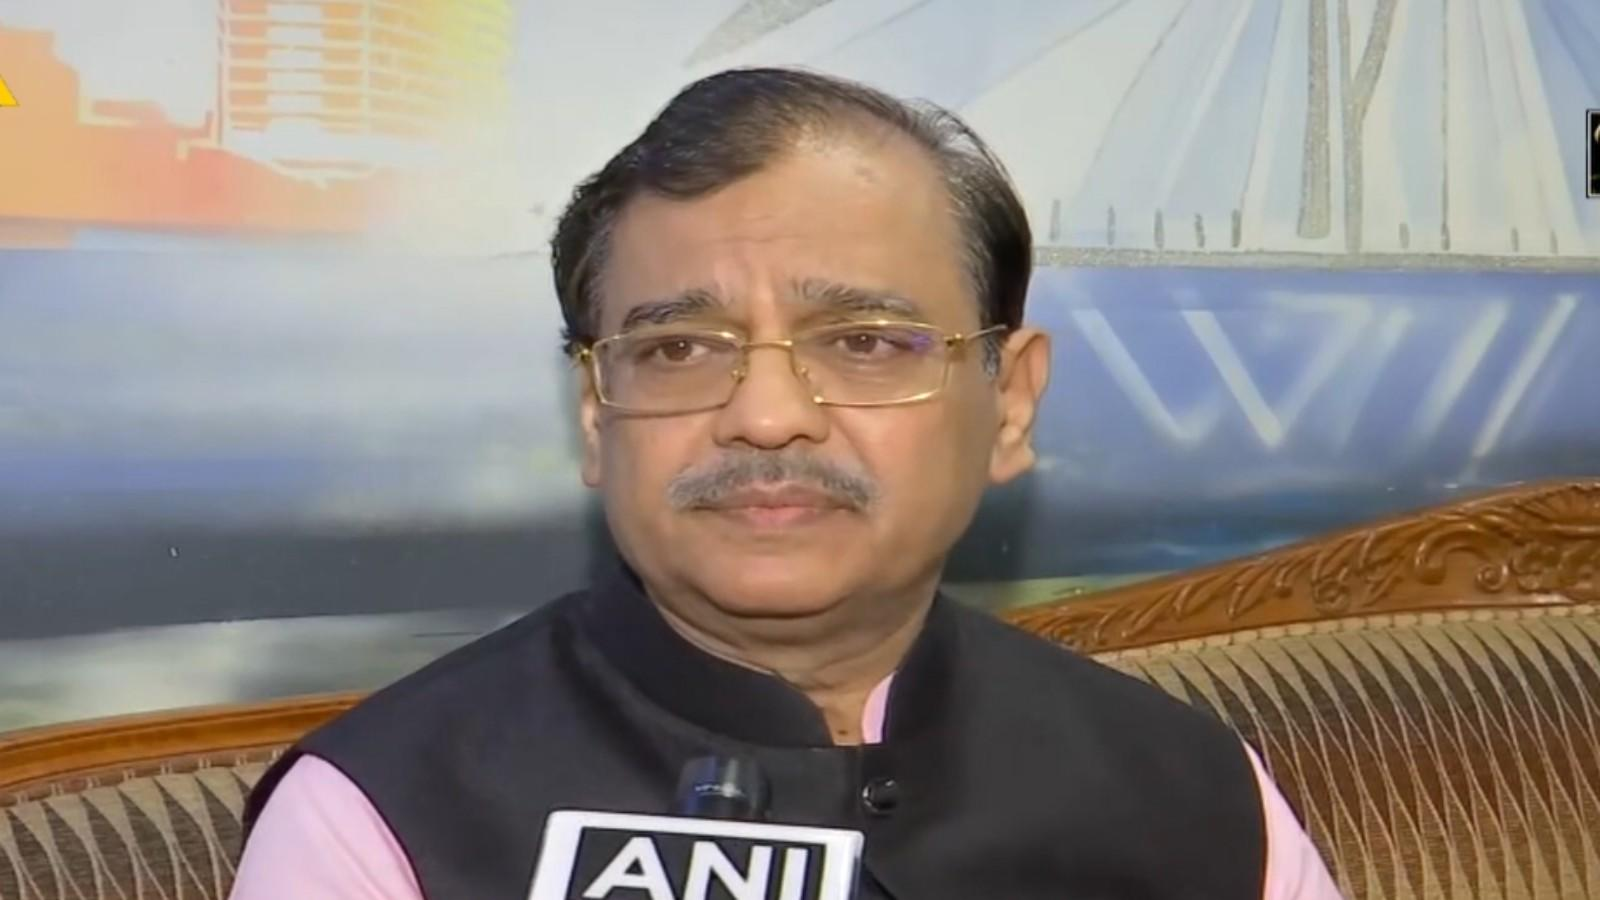 10-id-cards-of-26/11-attackers-carrying-hindu-names-were-fake-ujjwal-nikam